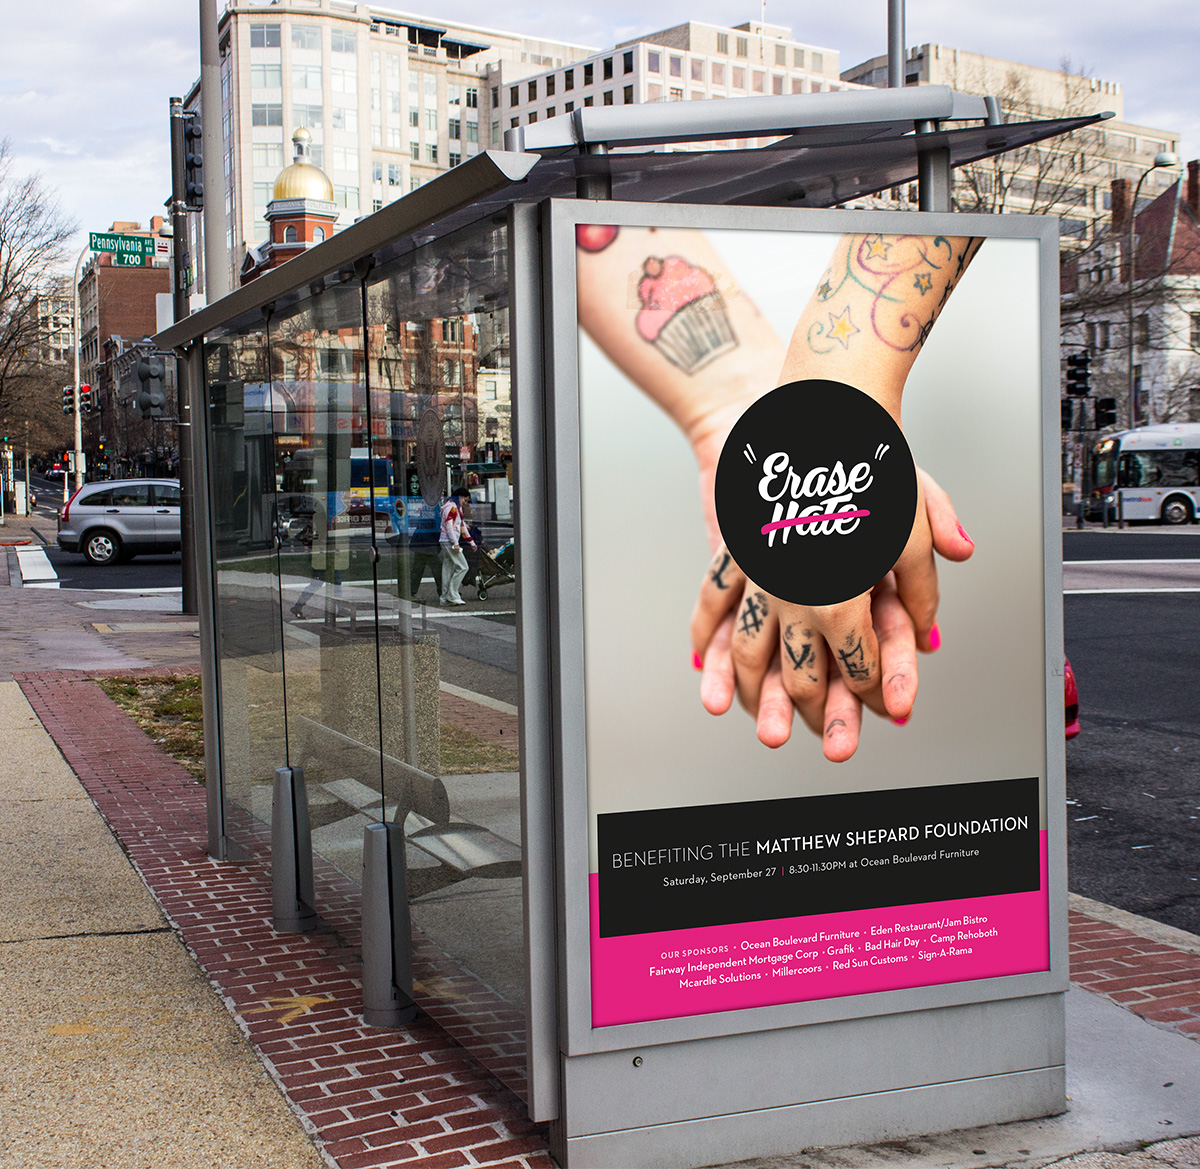 Erase Hate bus stop marketing advertisement using the new brand identity.